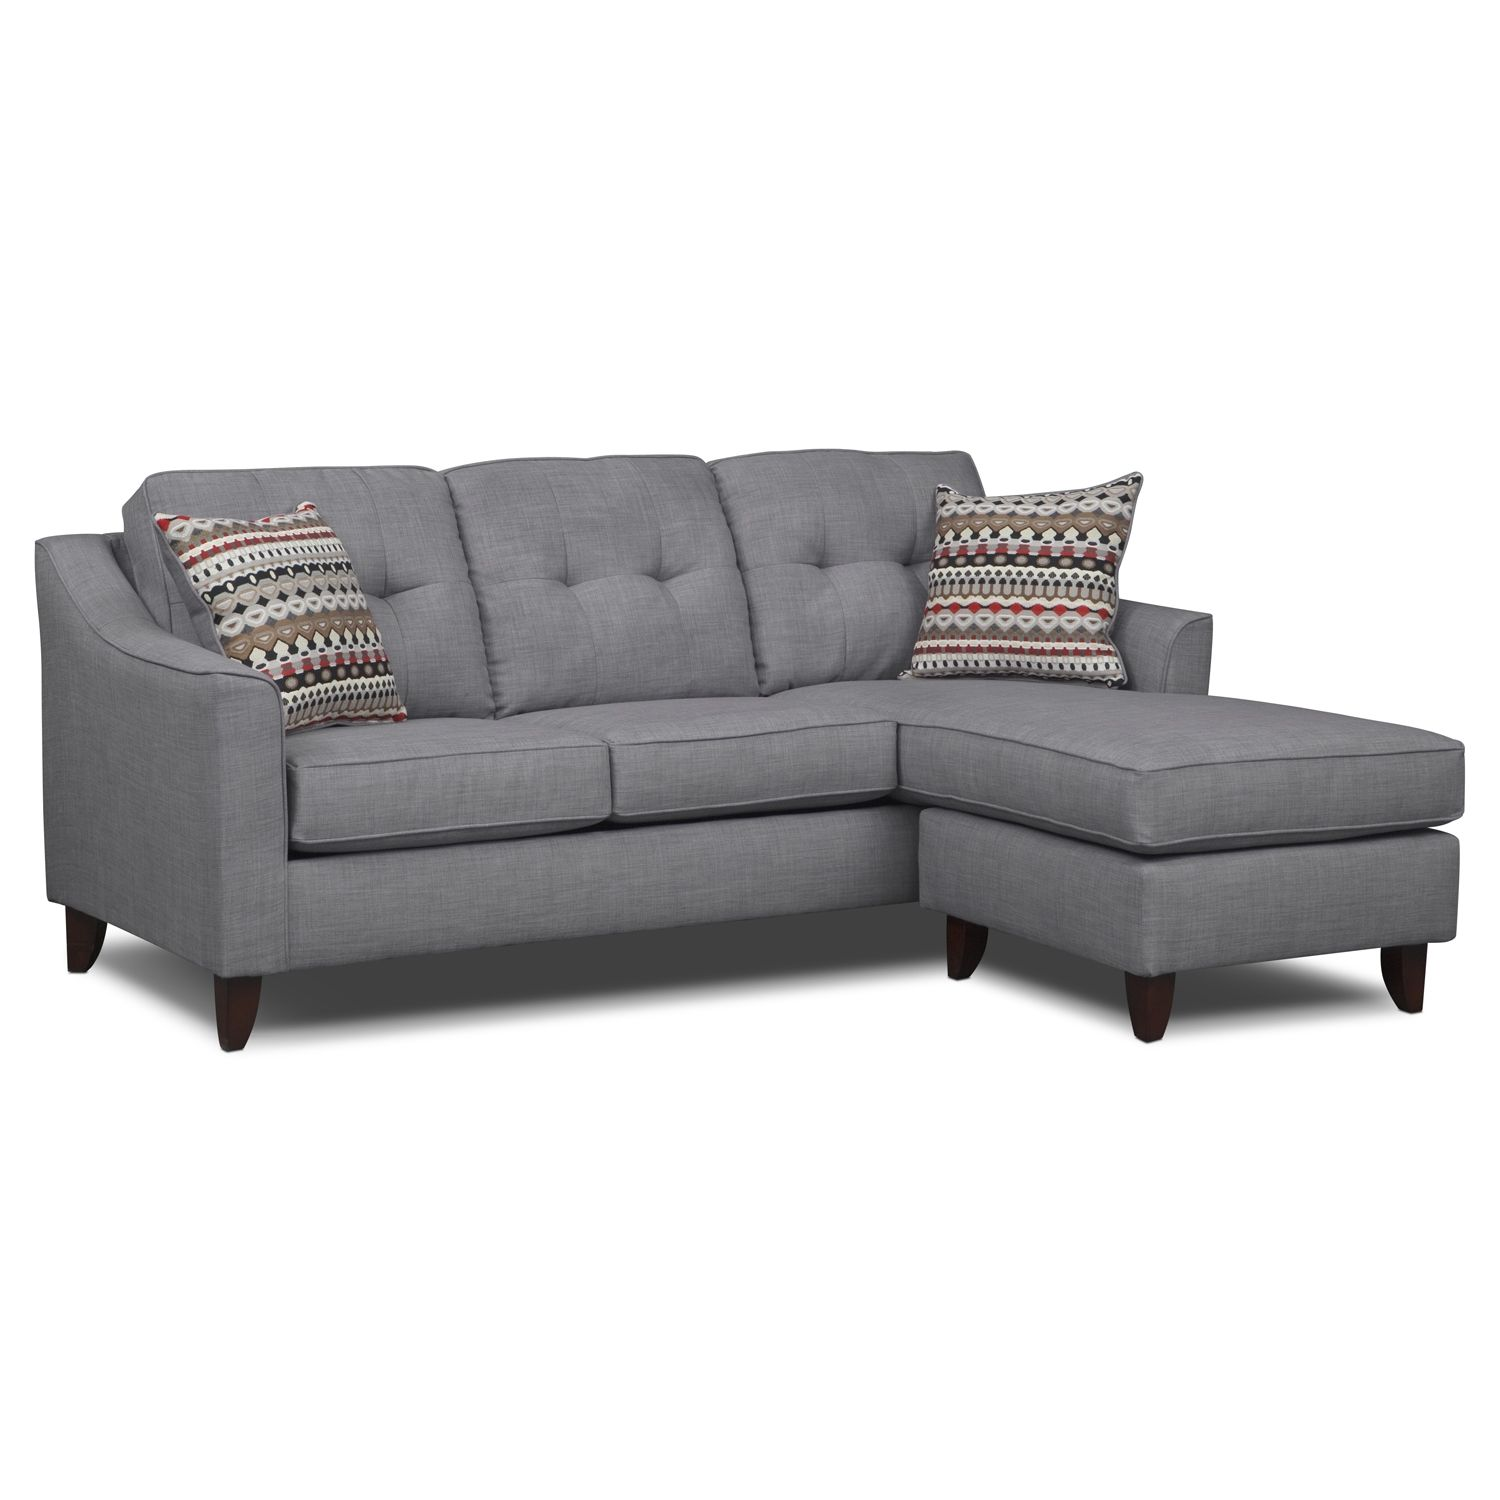 value city furniture marco chaise sofa bett leather living room cheep 499 99